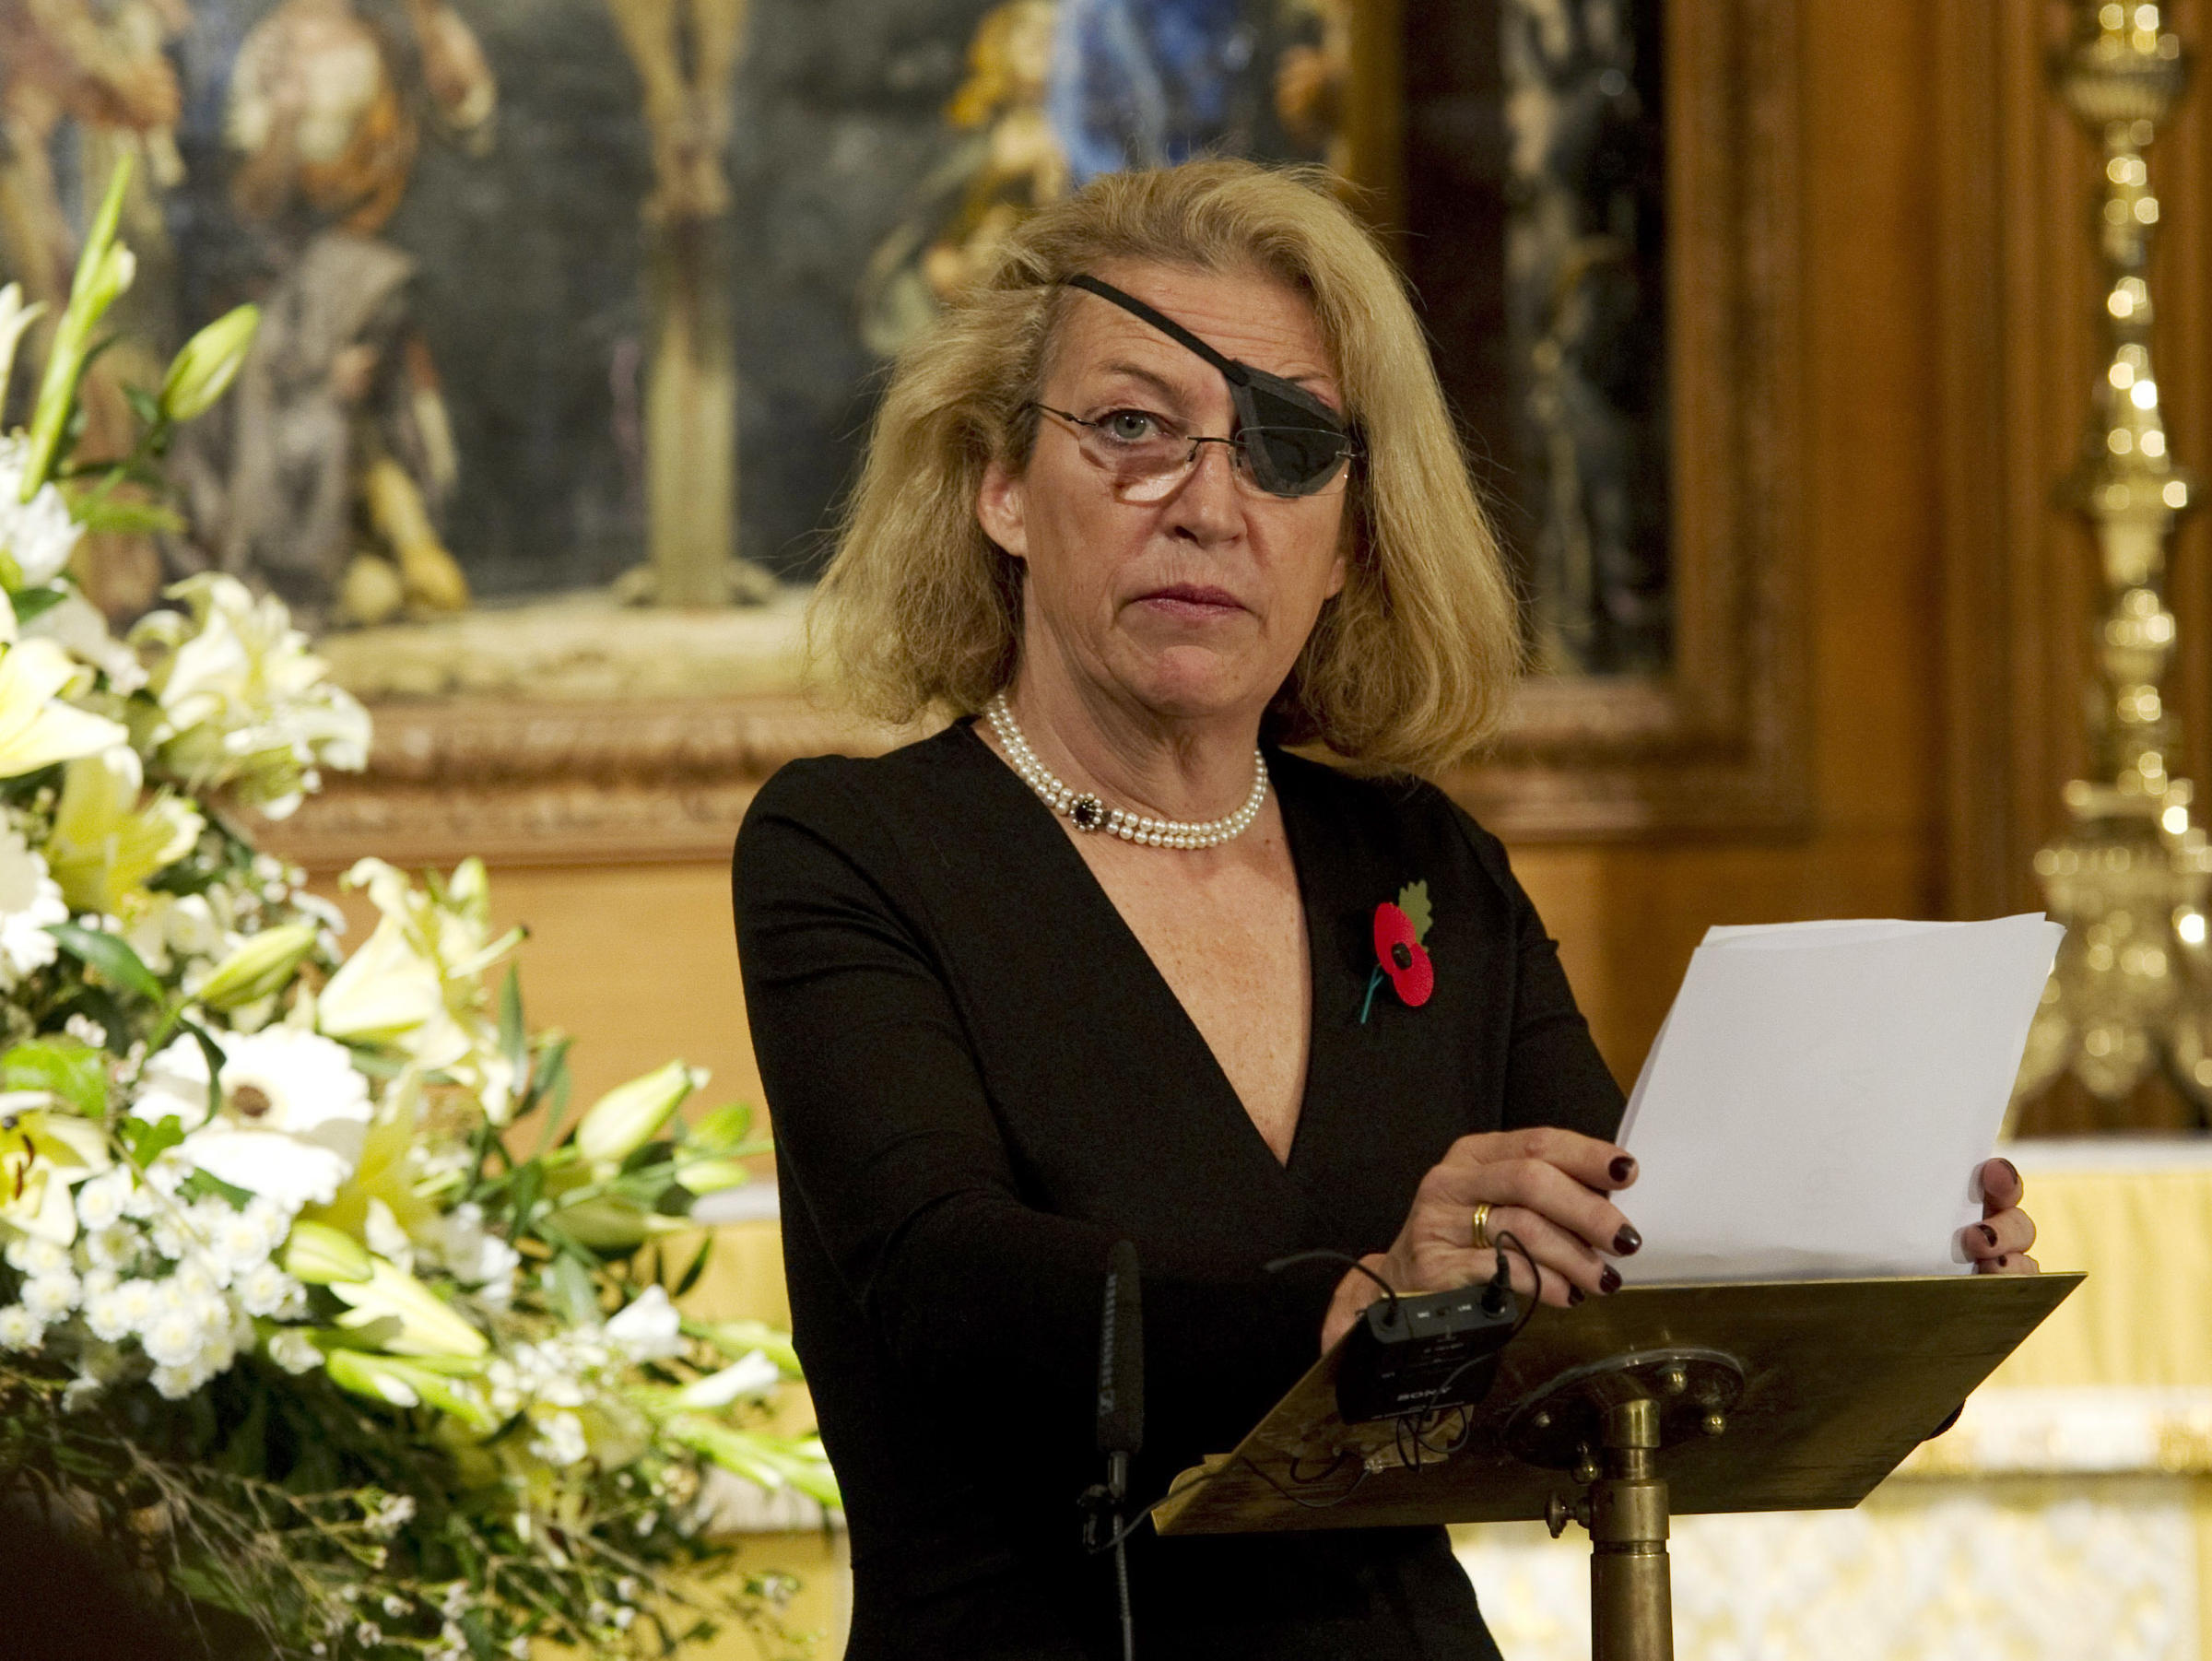 Relatives of journalist Marie Colvin sue Syria for her death